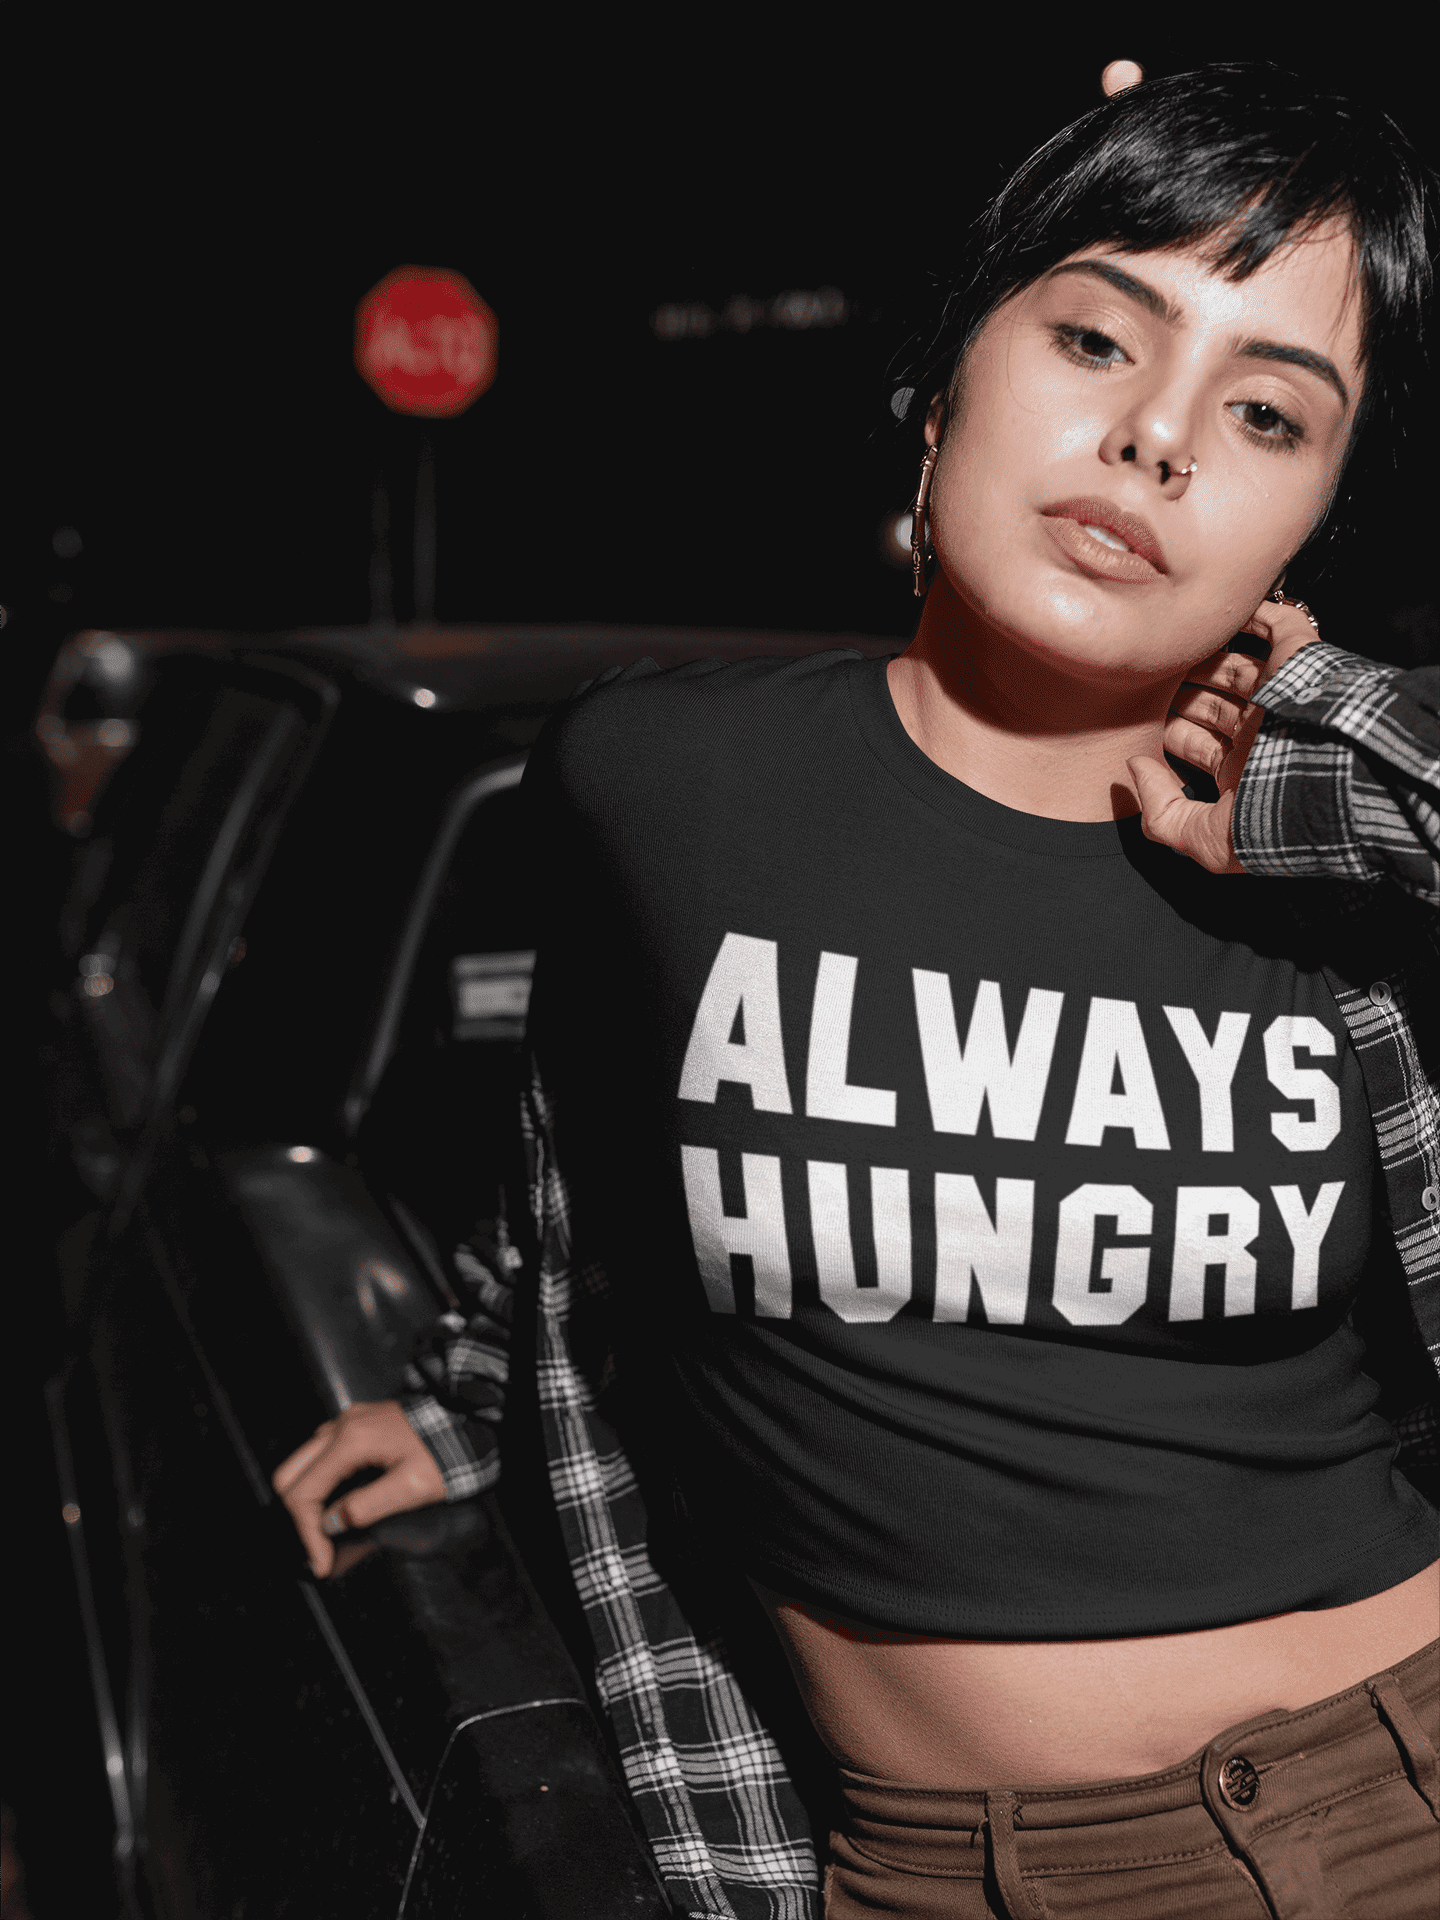 Always Hungry Black Top  -  XS/S / Black  -  Crop Top  - SNS Outlet